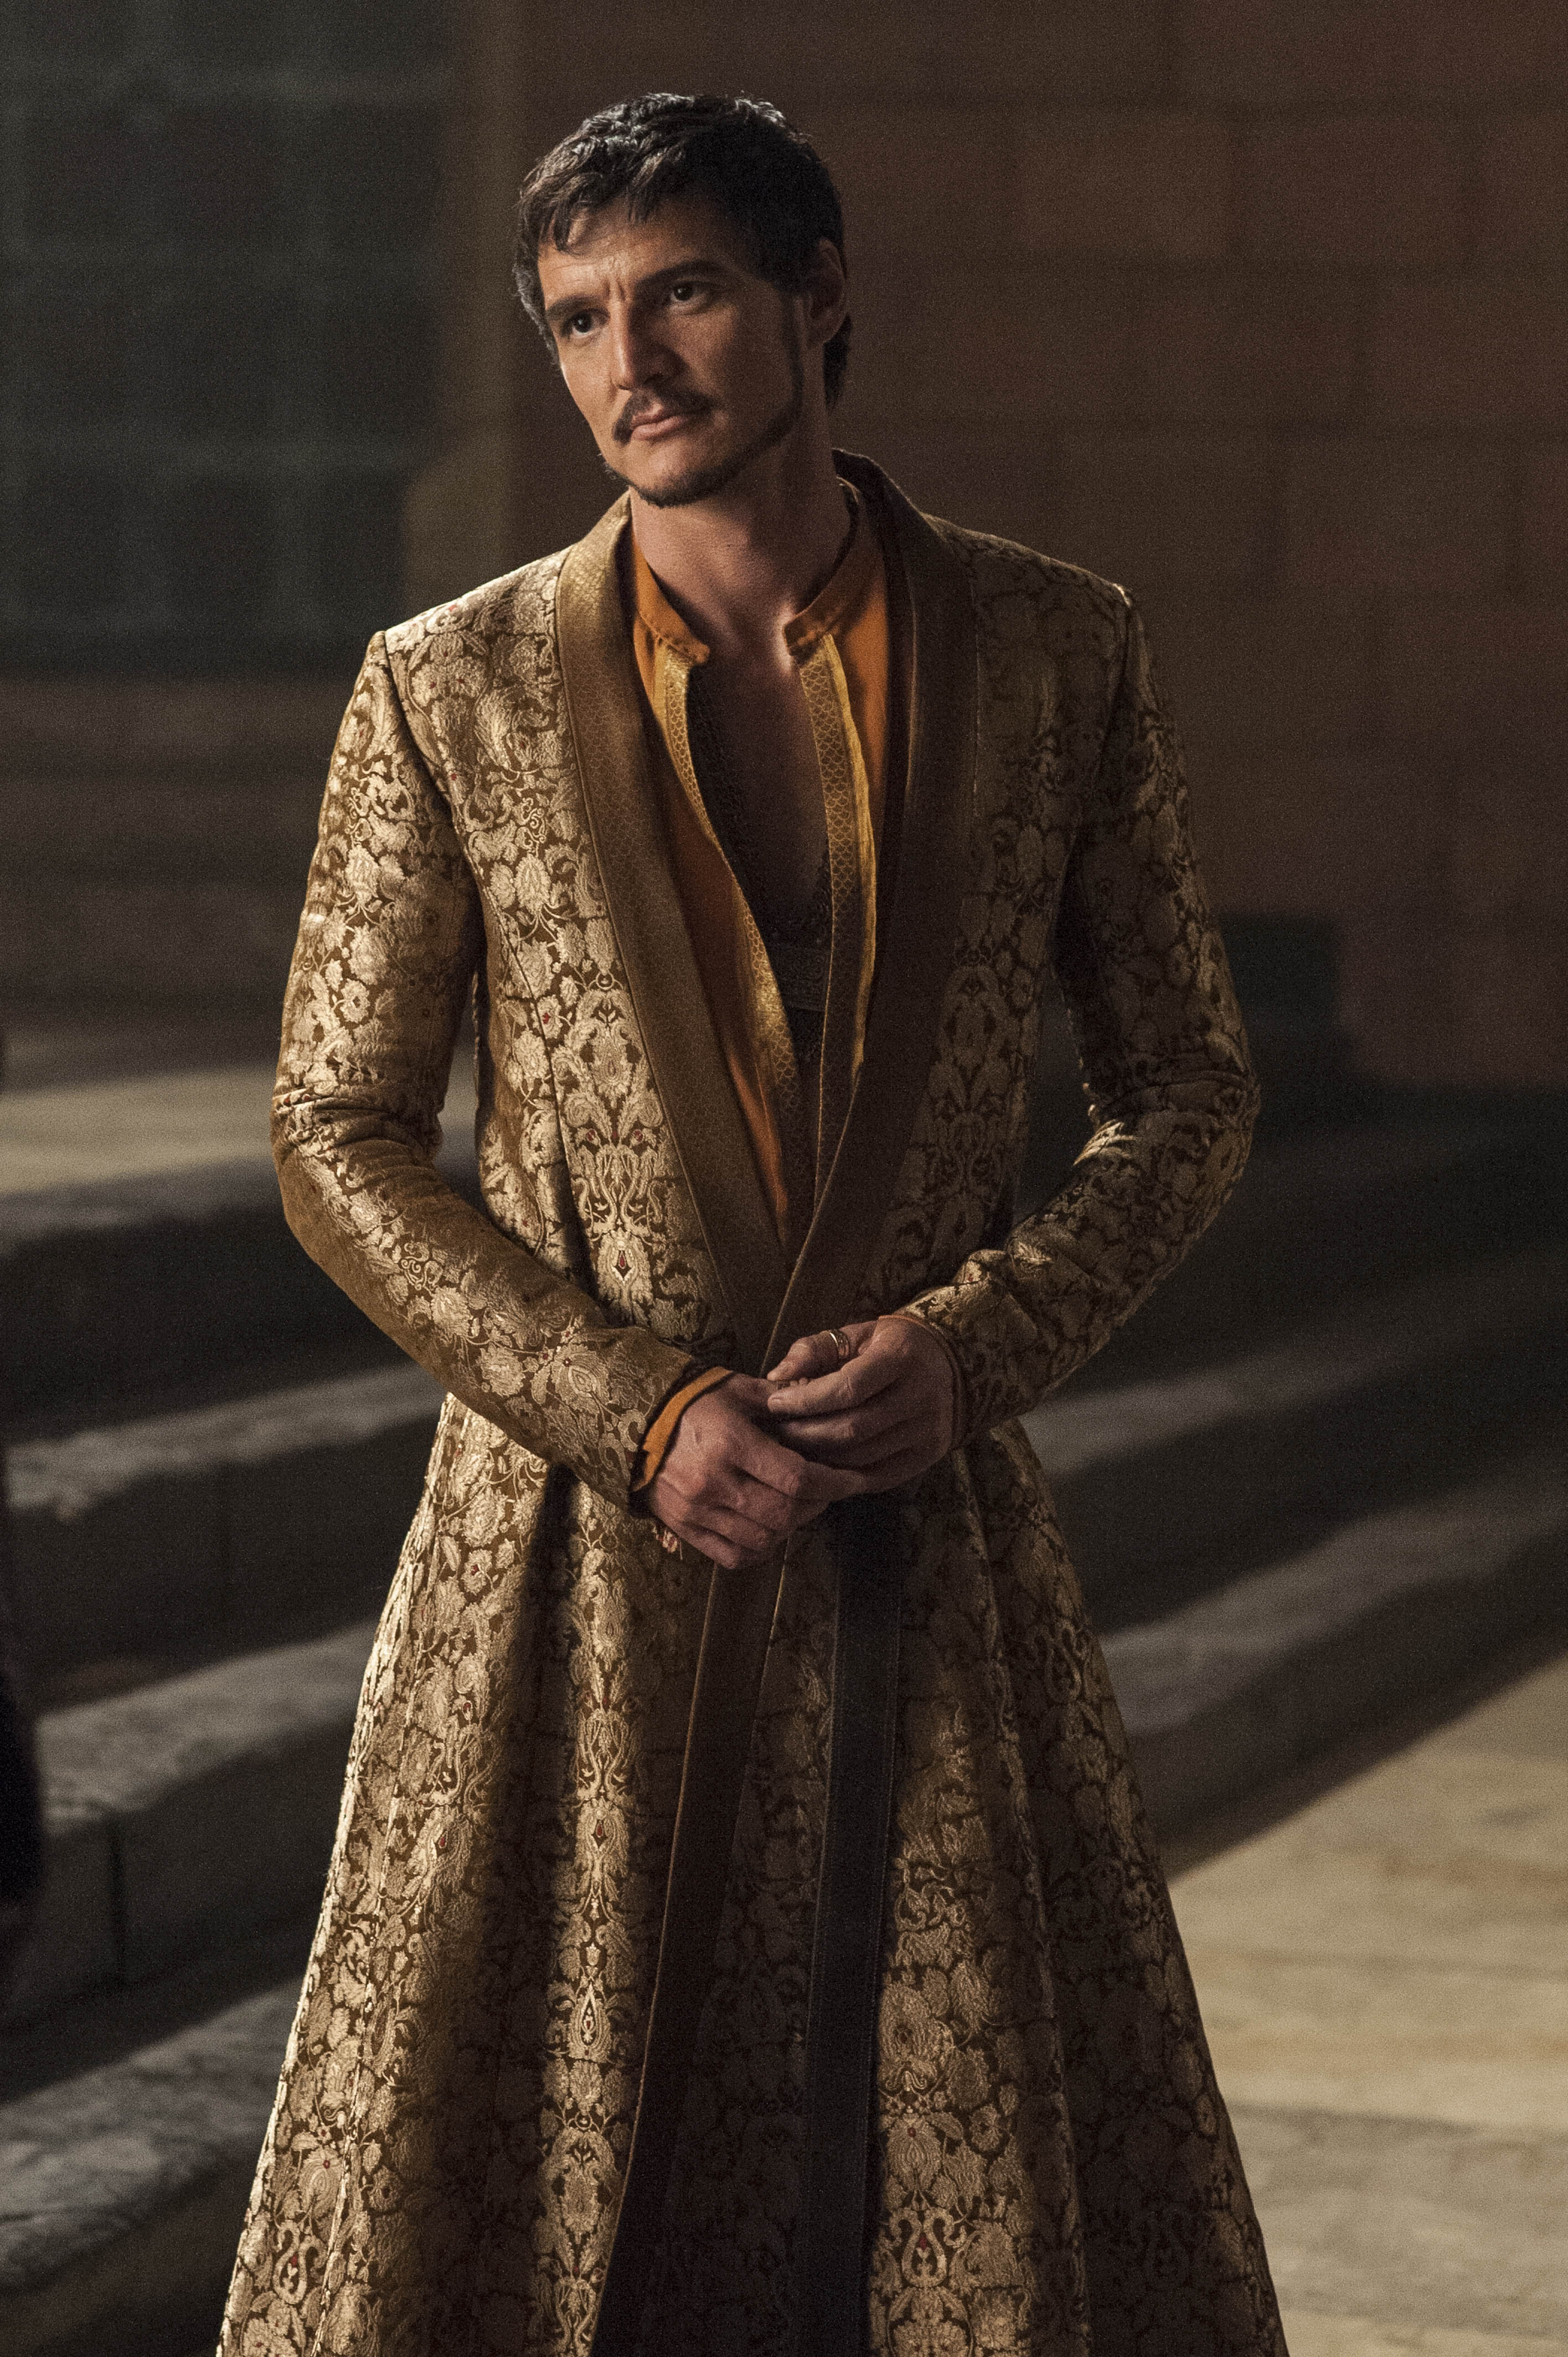 Got Red Nails For Prom Jems And Sparkles Were Added: Oberyn Martell Images Oberyn Martell HD Wallpaper And